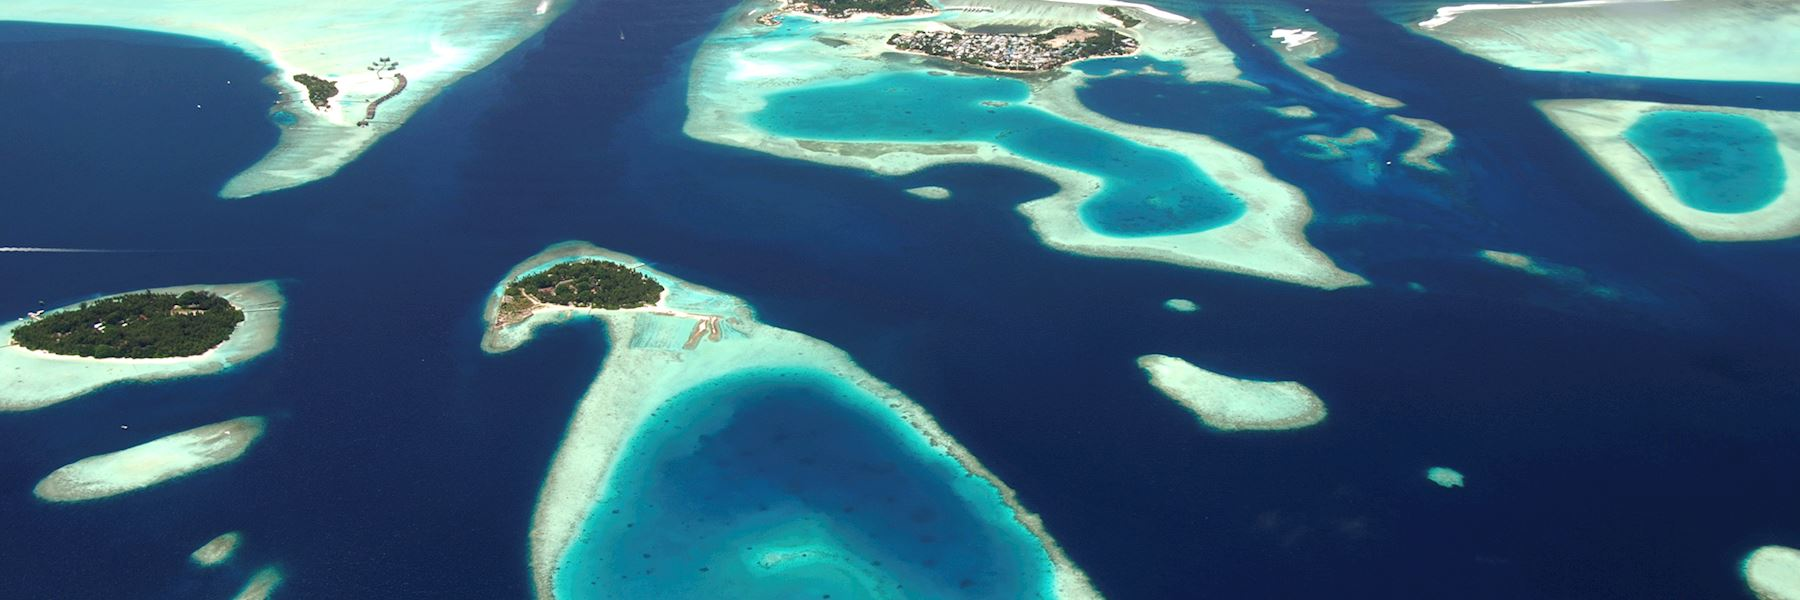 The Maldives travel advice